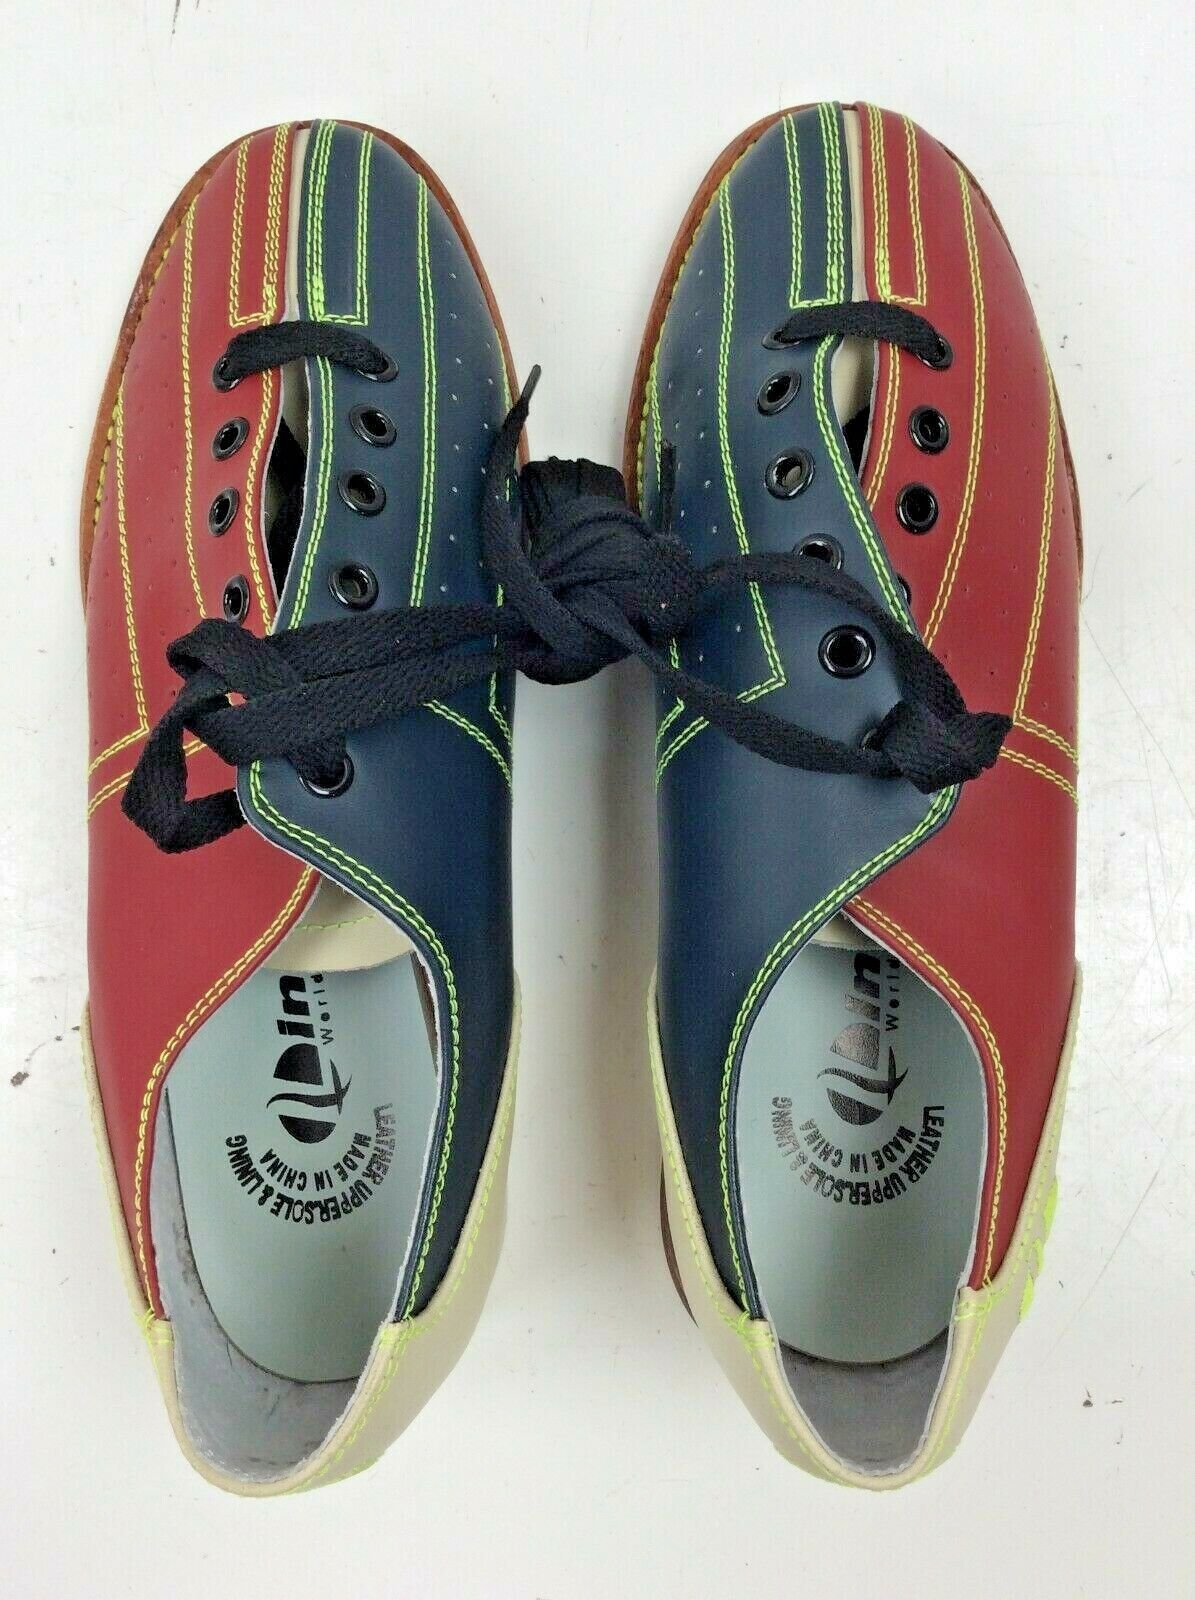 New Pr Linds World IMPEX Bowling Shoes Classic Rental Style